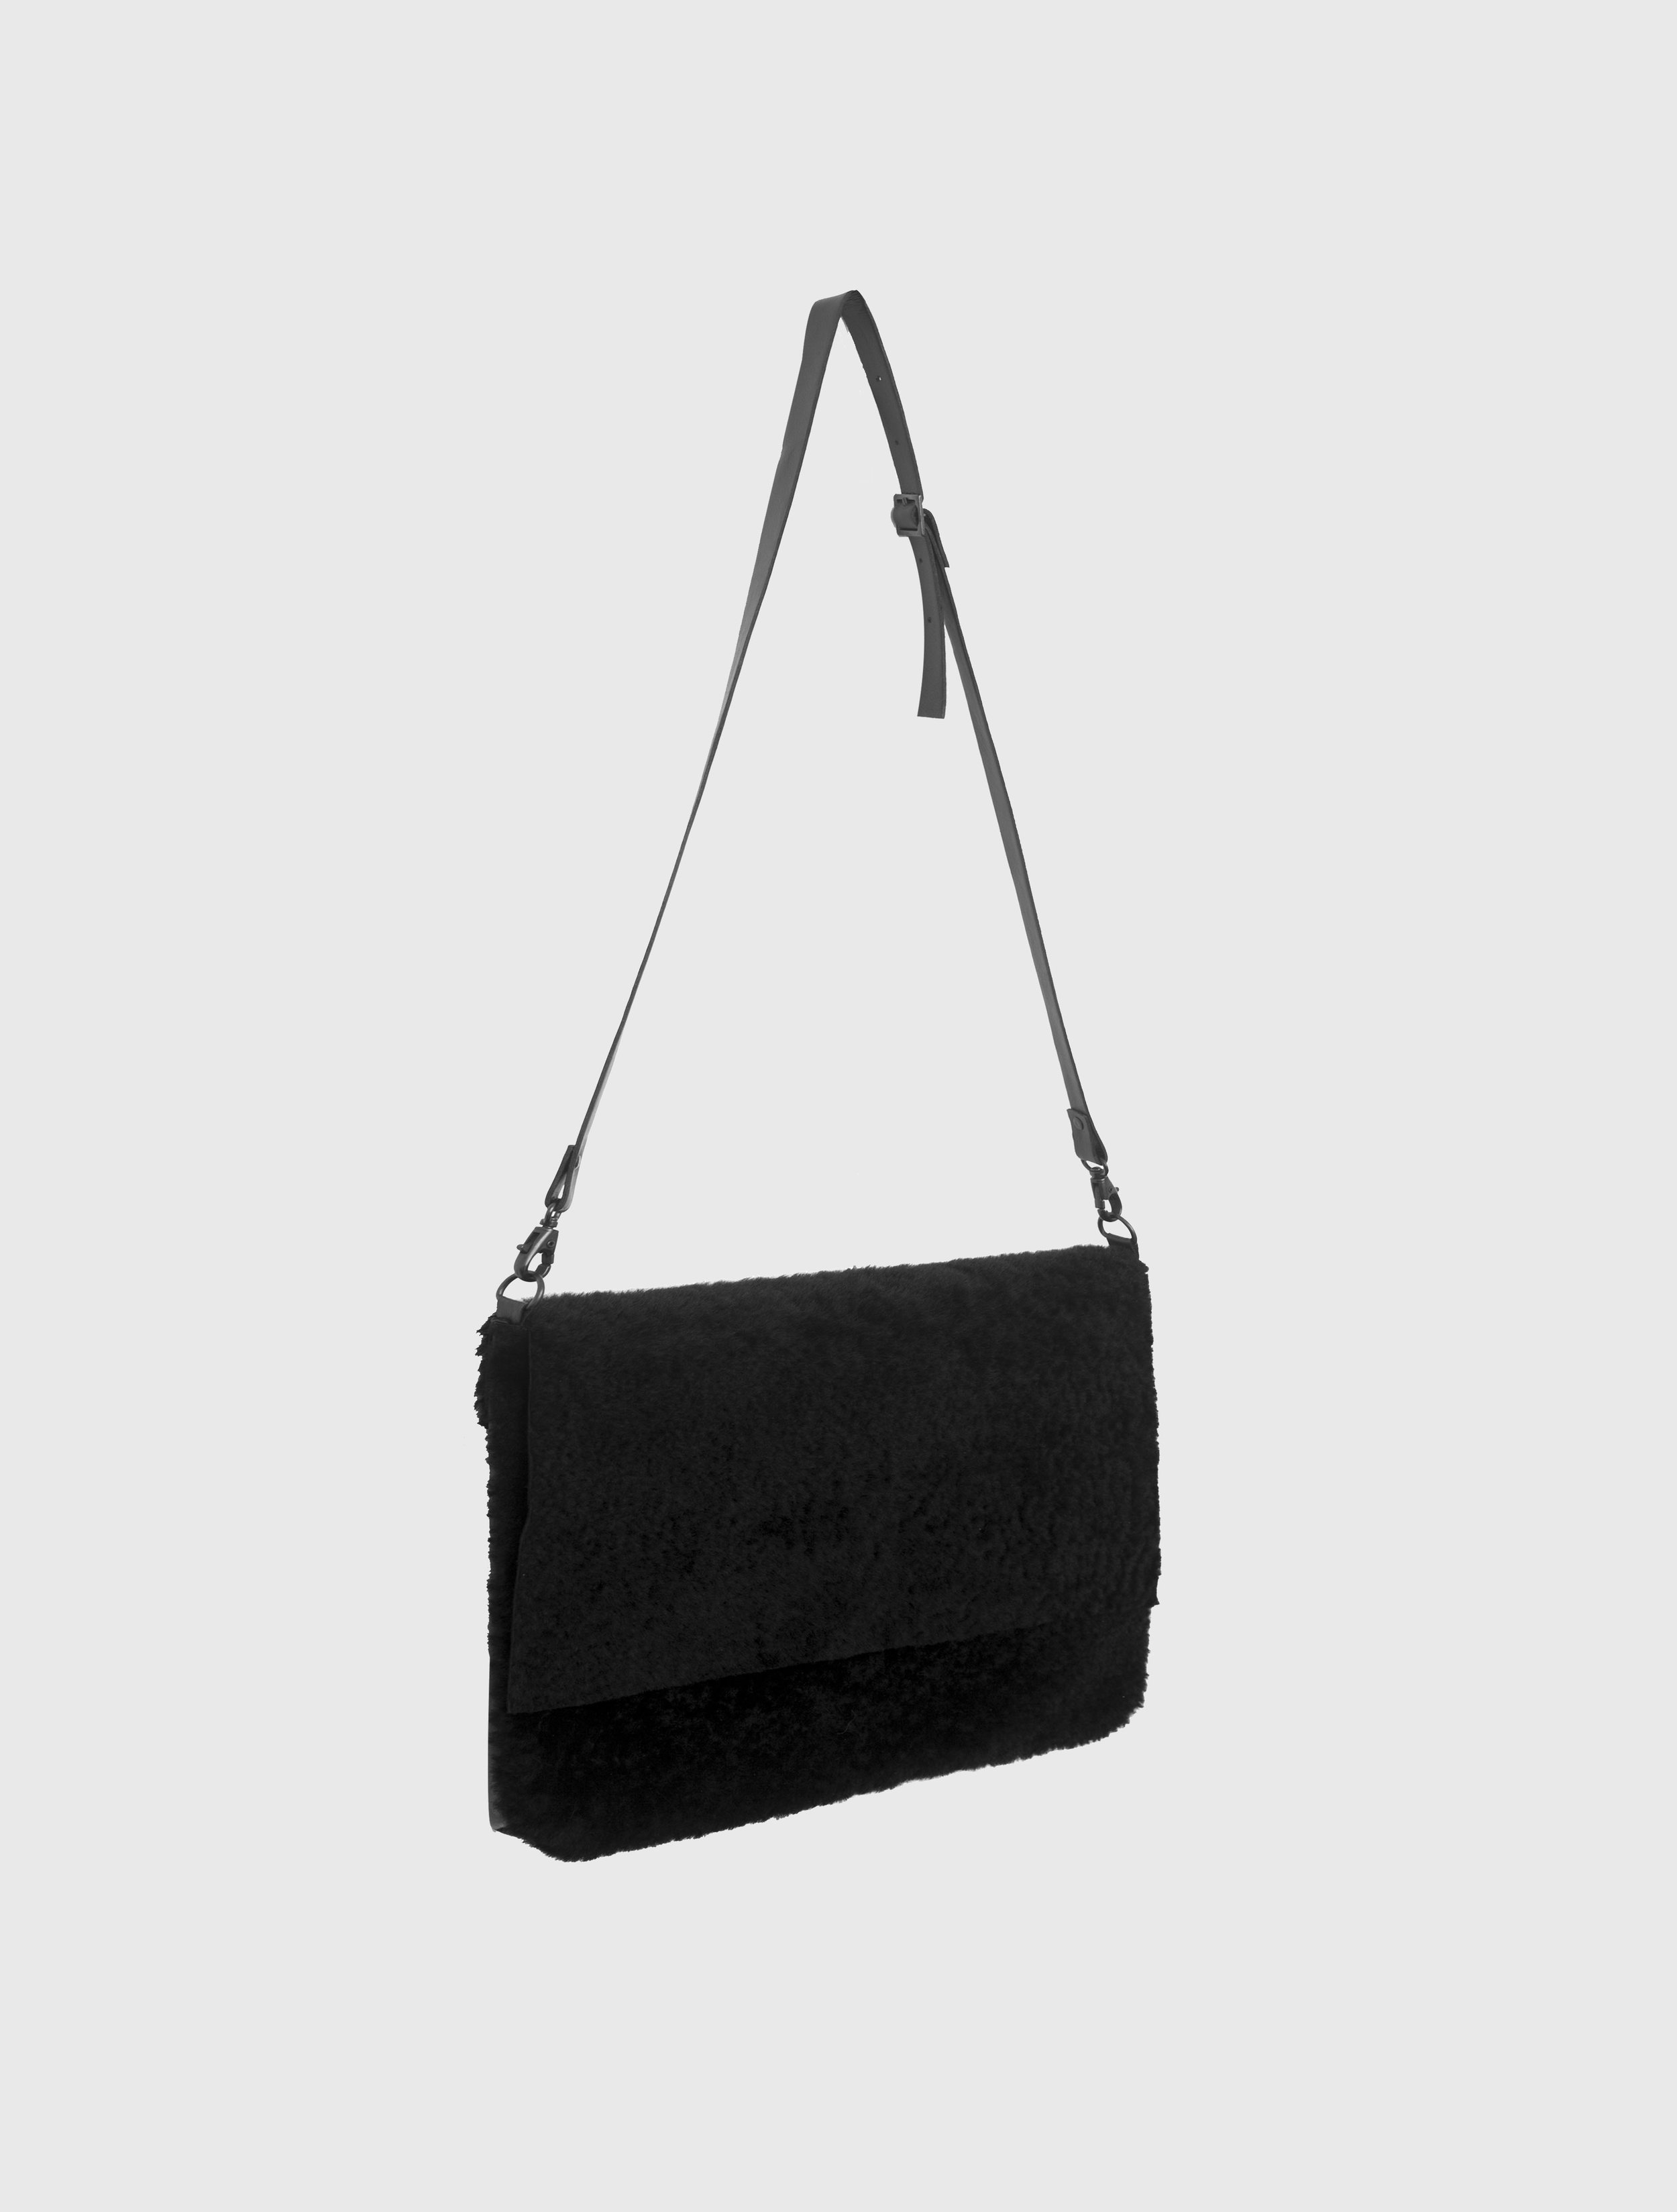 SHEEPSKIN SHOULDER BAG_0001_Layer 1.jpg